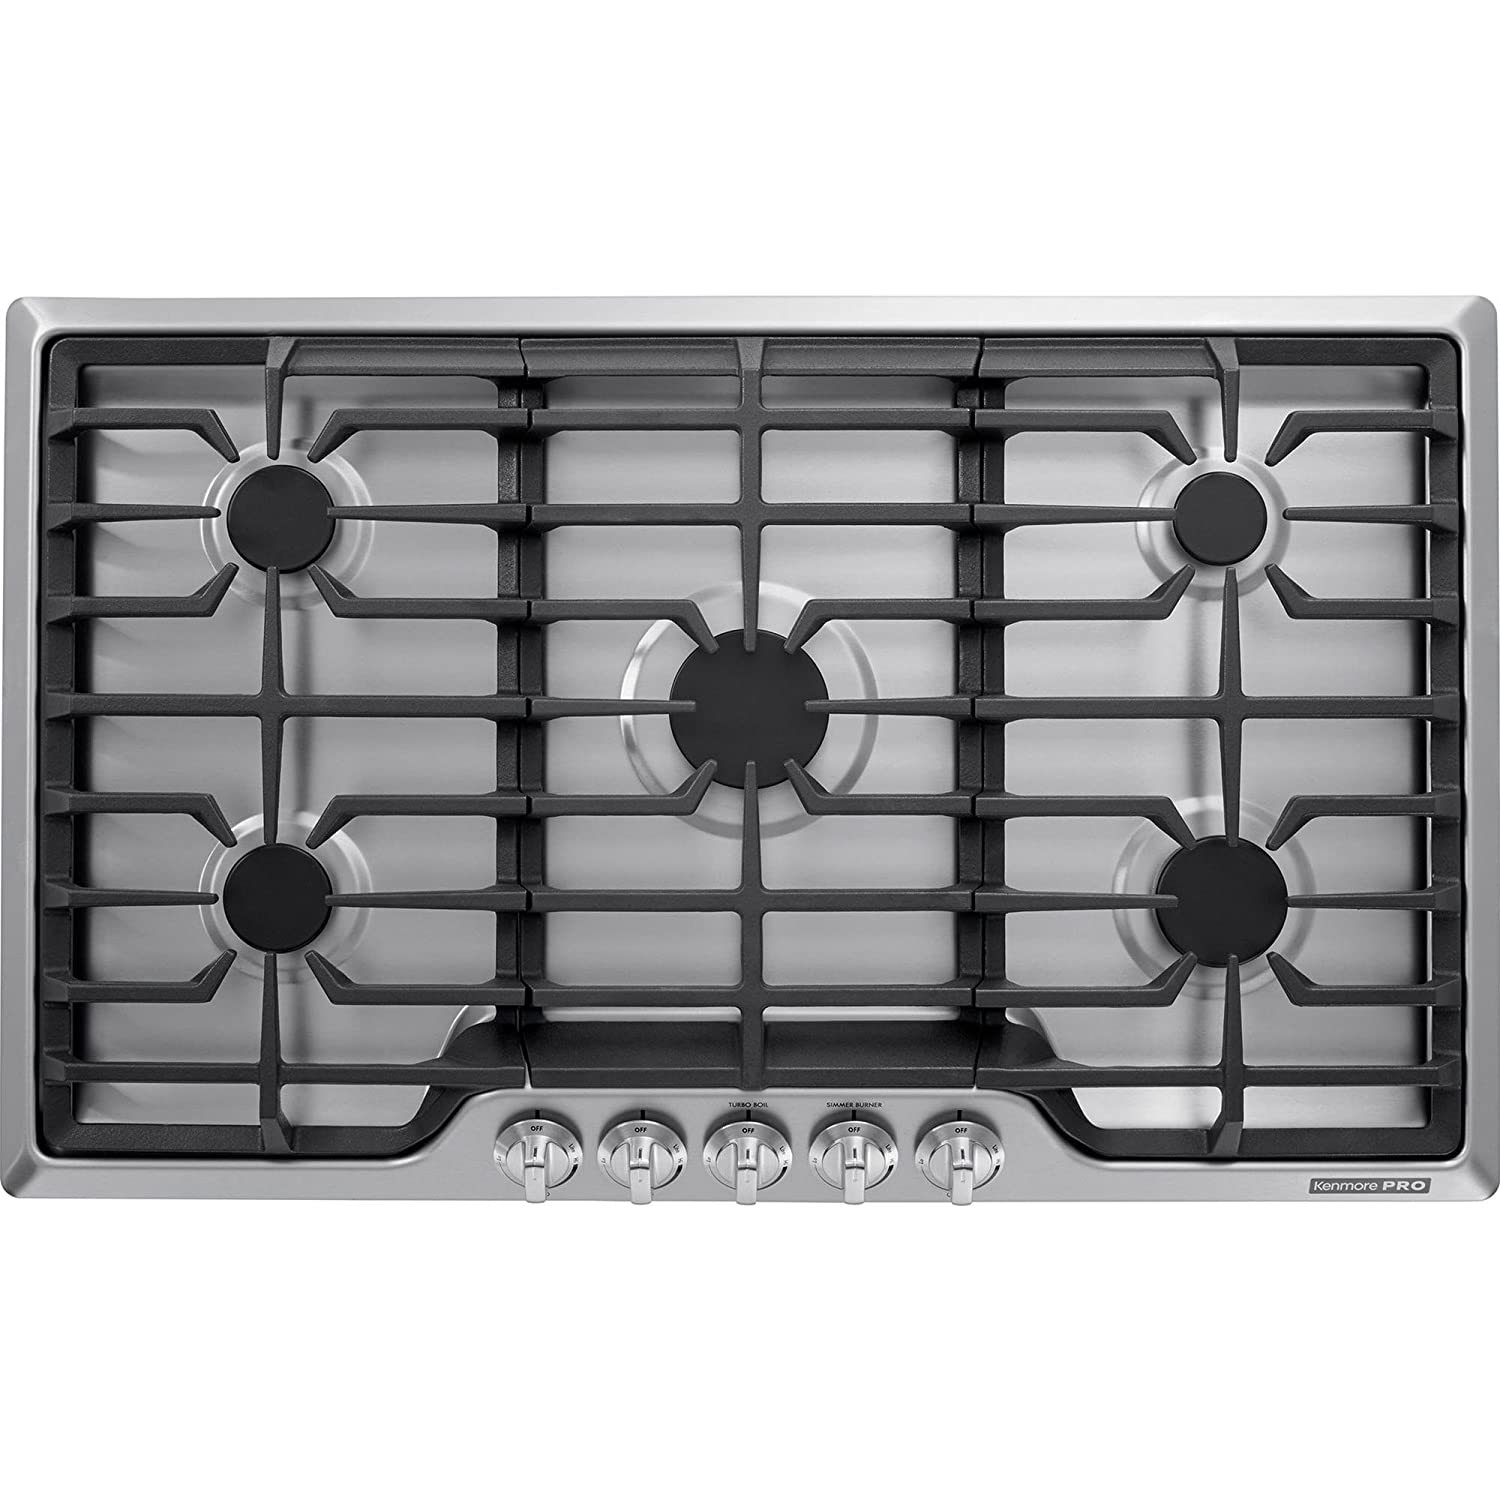 Kenmore PRO 34423 36' 5 Burner Gas Cooktop in Stainless Steel, includes delivery and hookup Sears Brands Management Corporation (Kenmore) 02234423